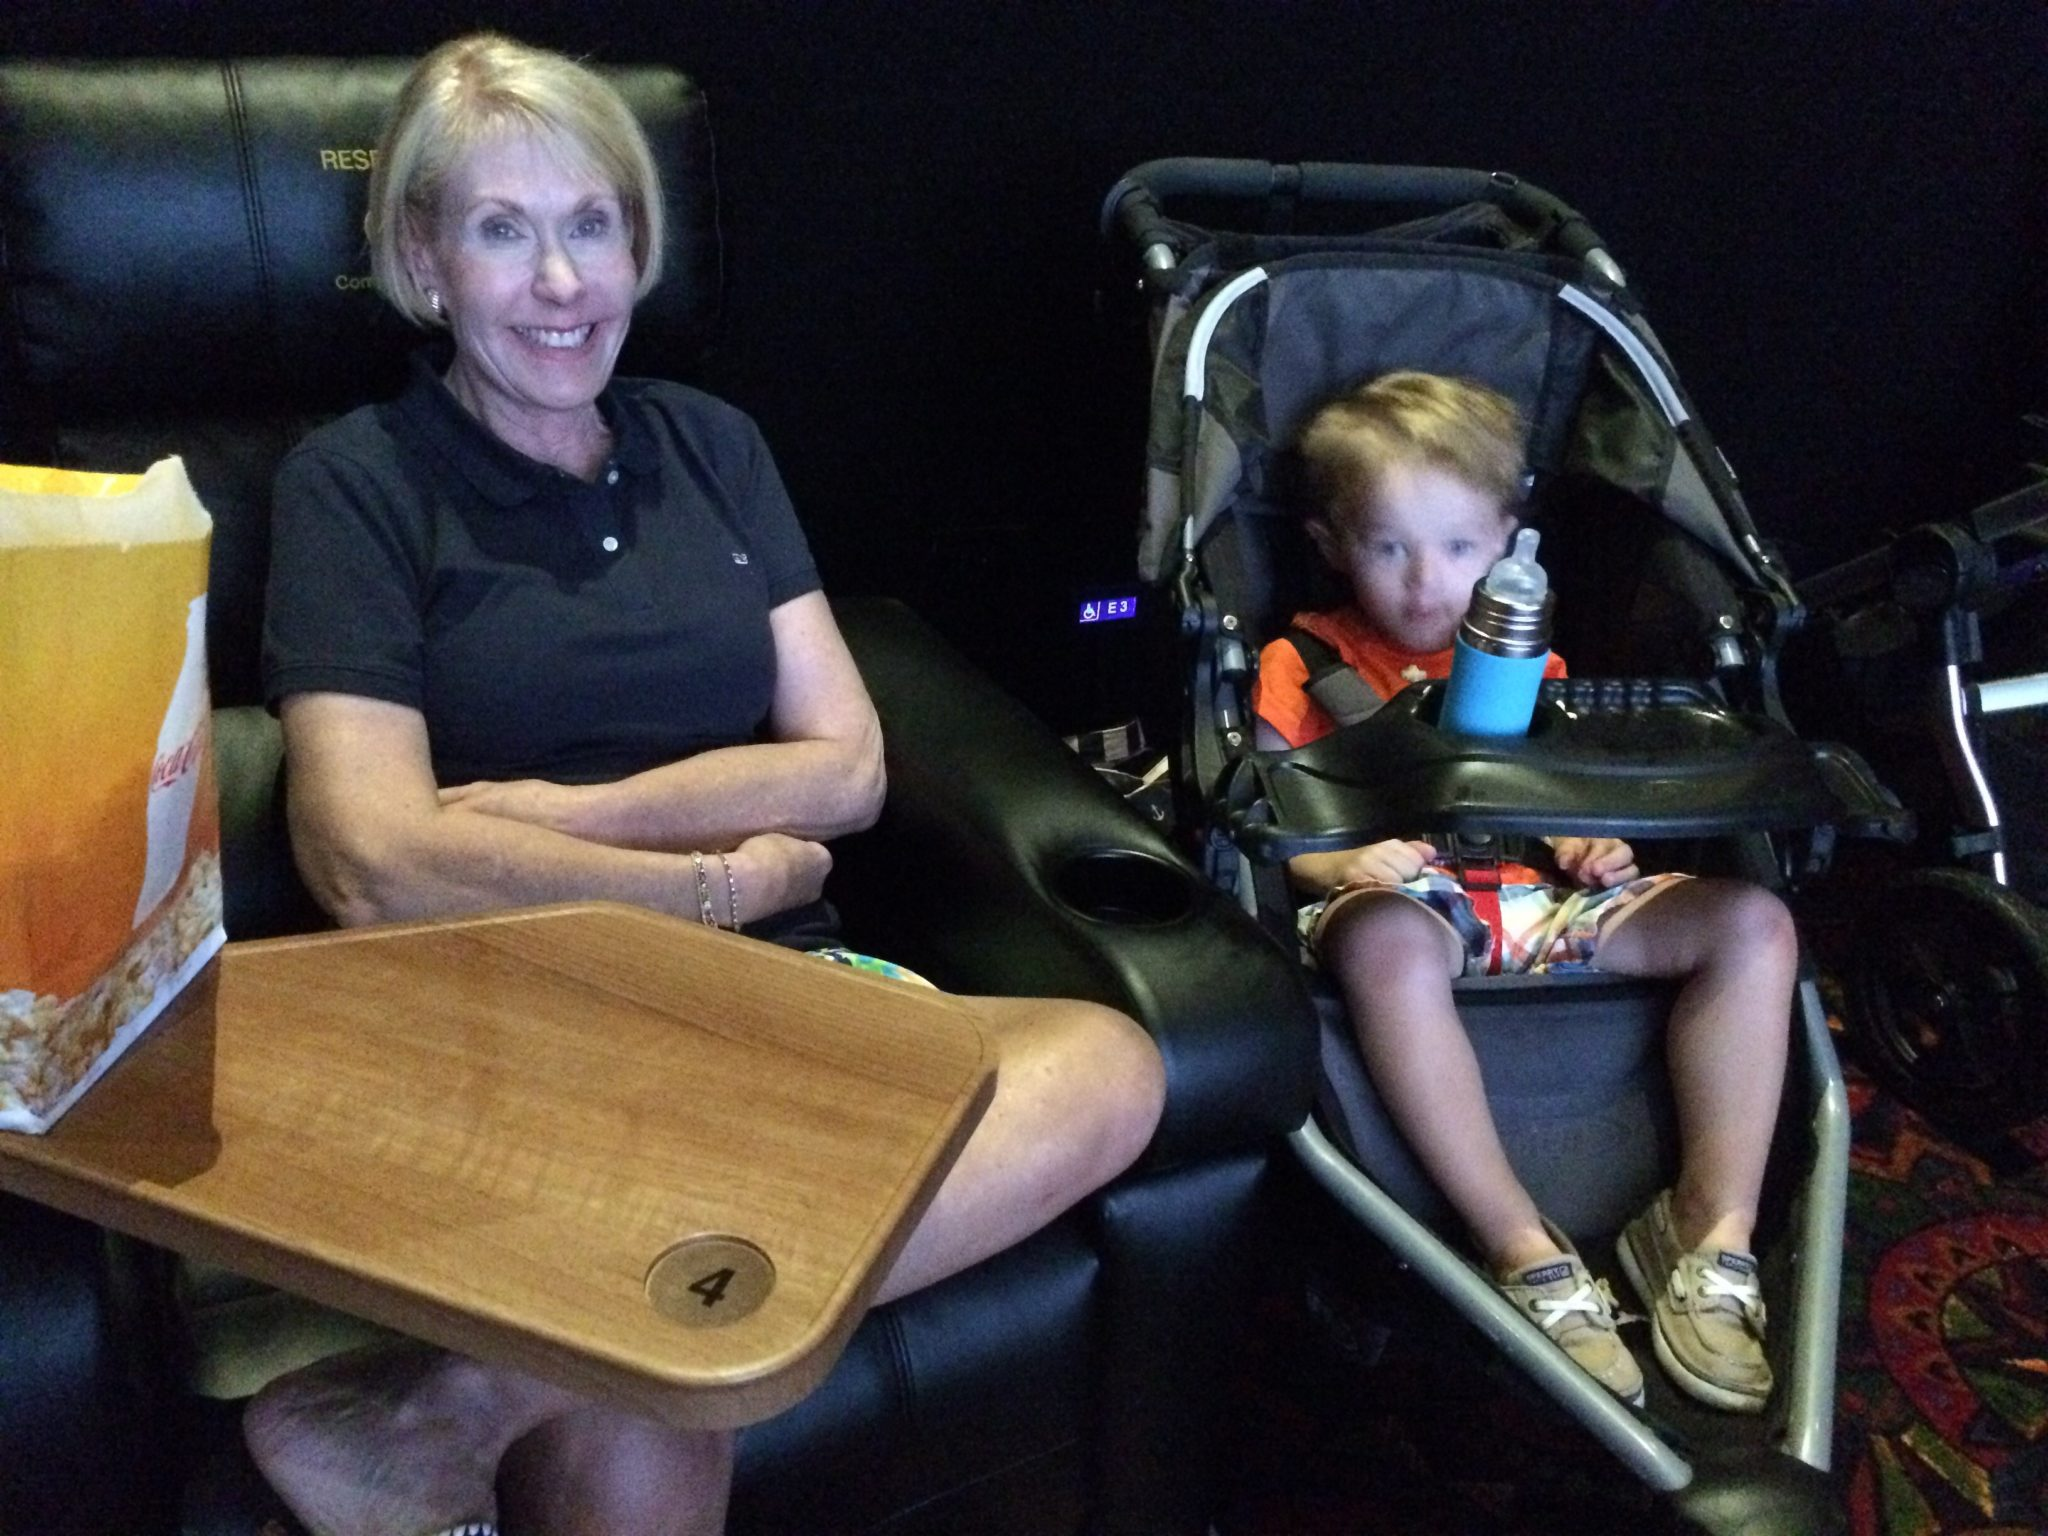 Tips for your toddler's first movie theater experience.